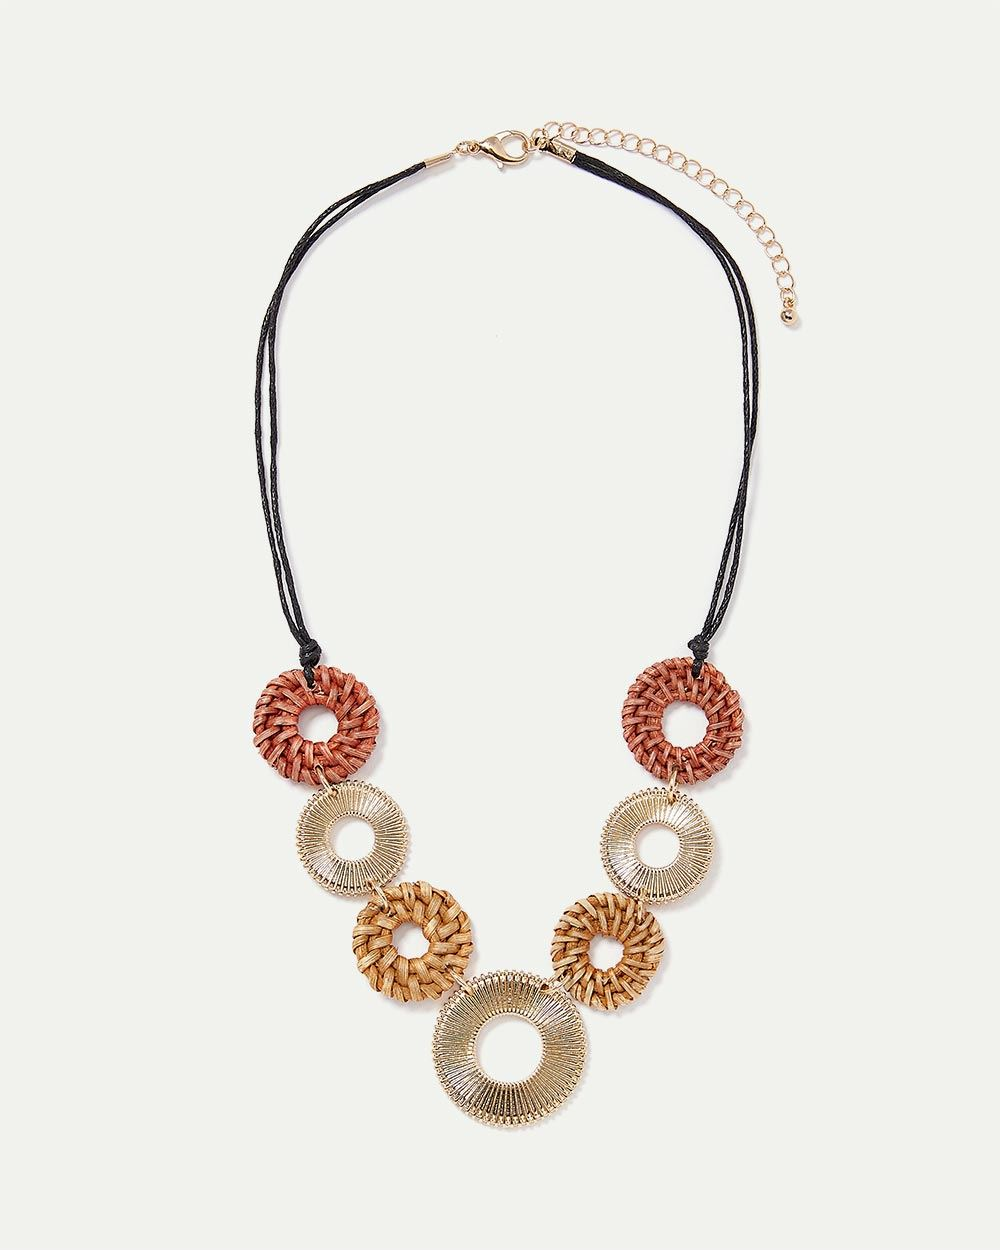 Short Necklace with Metal and Straw Discs